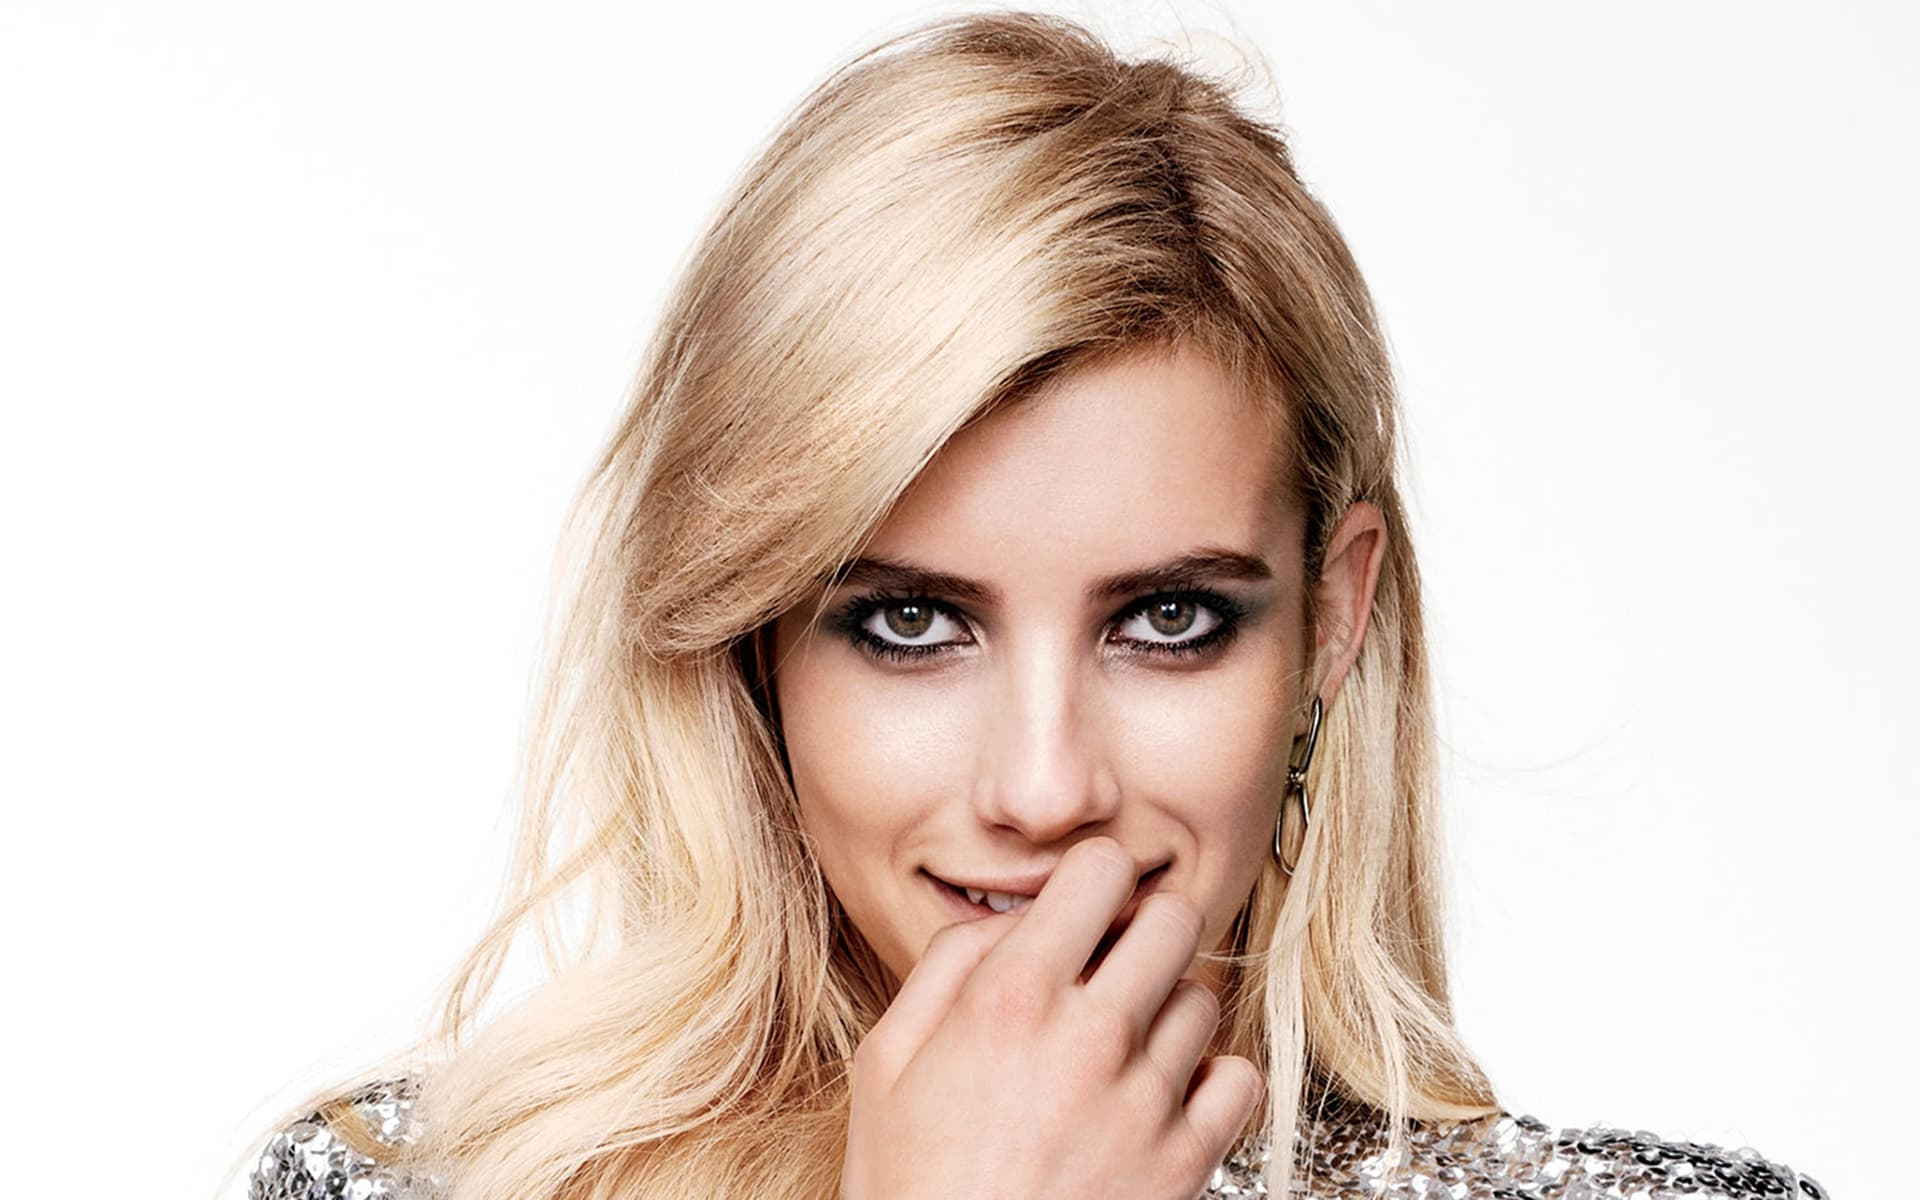 eyes of Emma Roberts HD wallpaper for PC